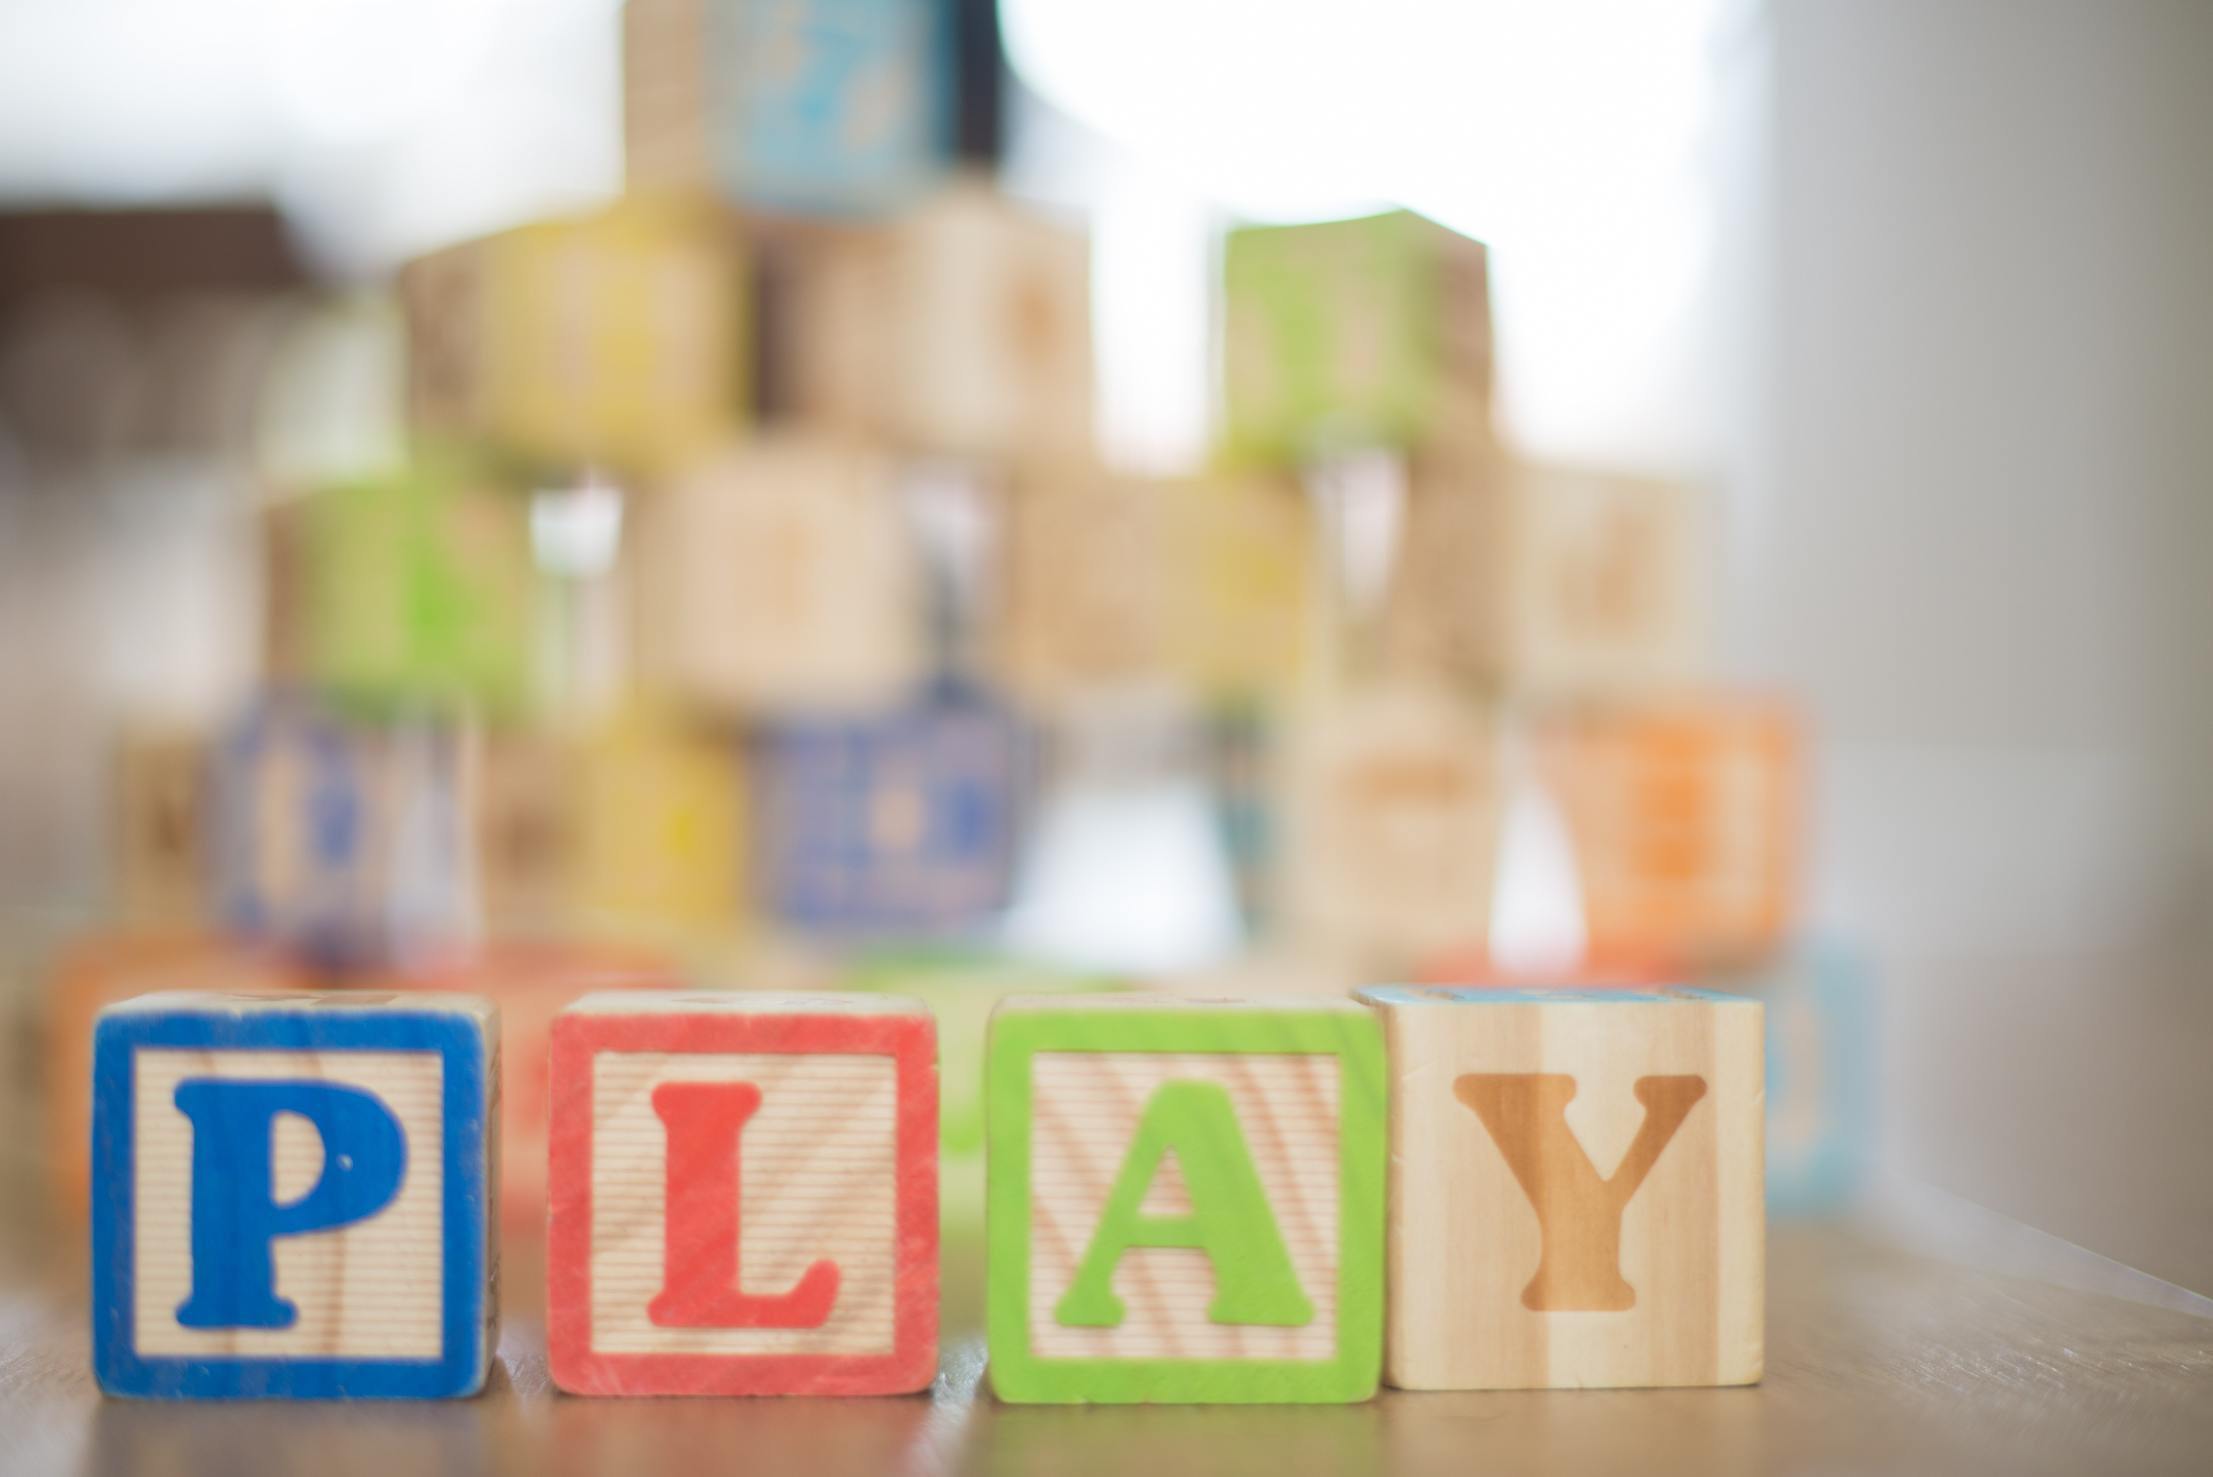 Photo of colorful wooden blocks that spell out play.